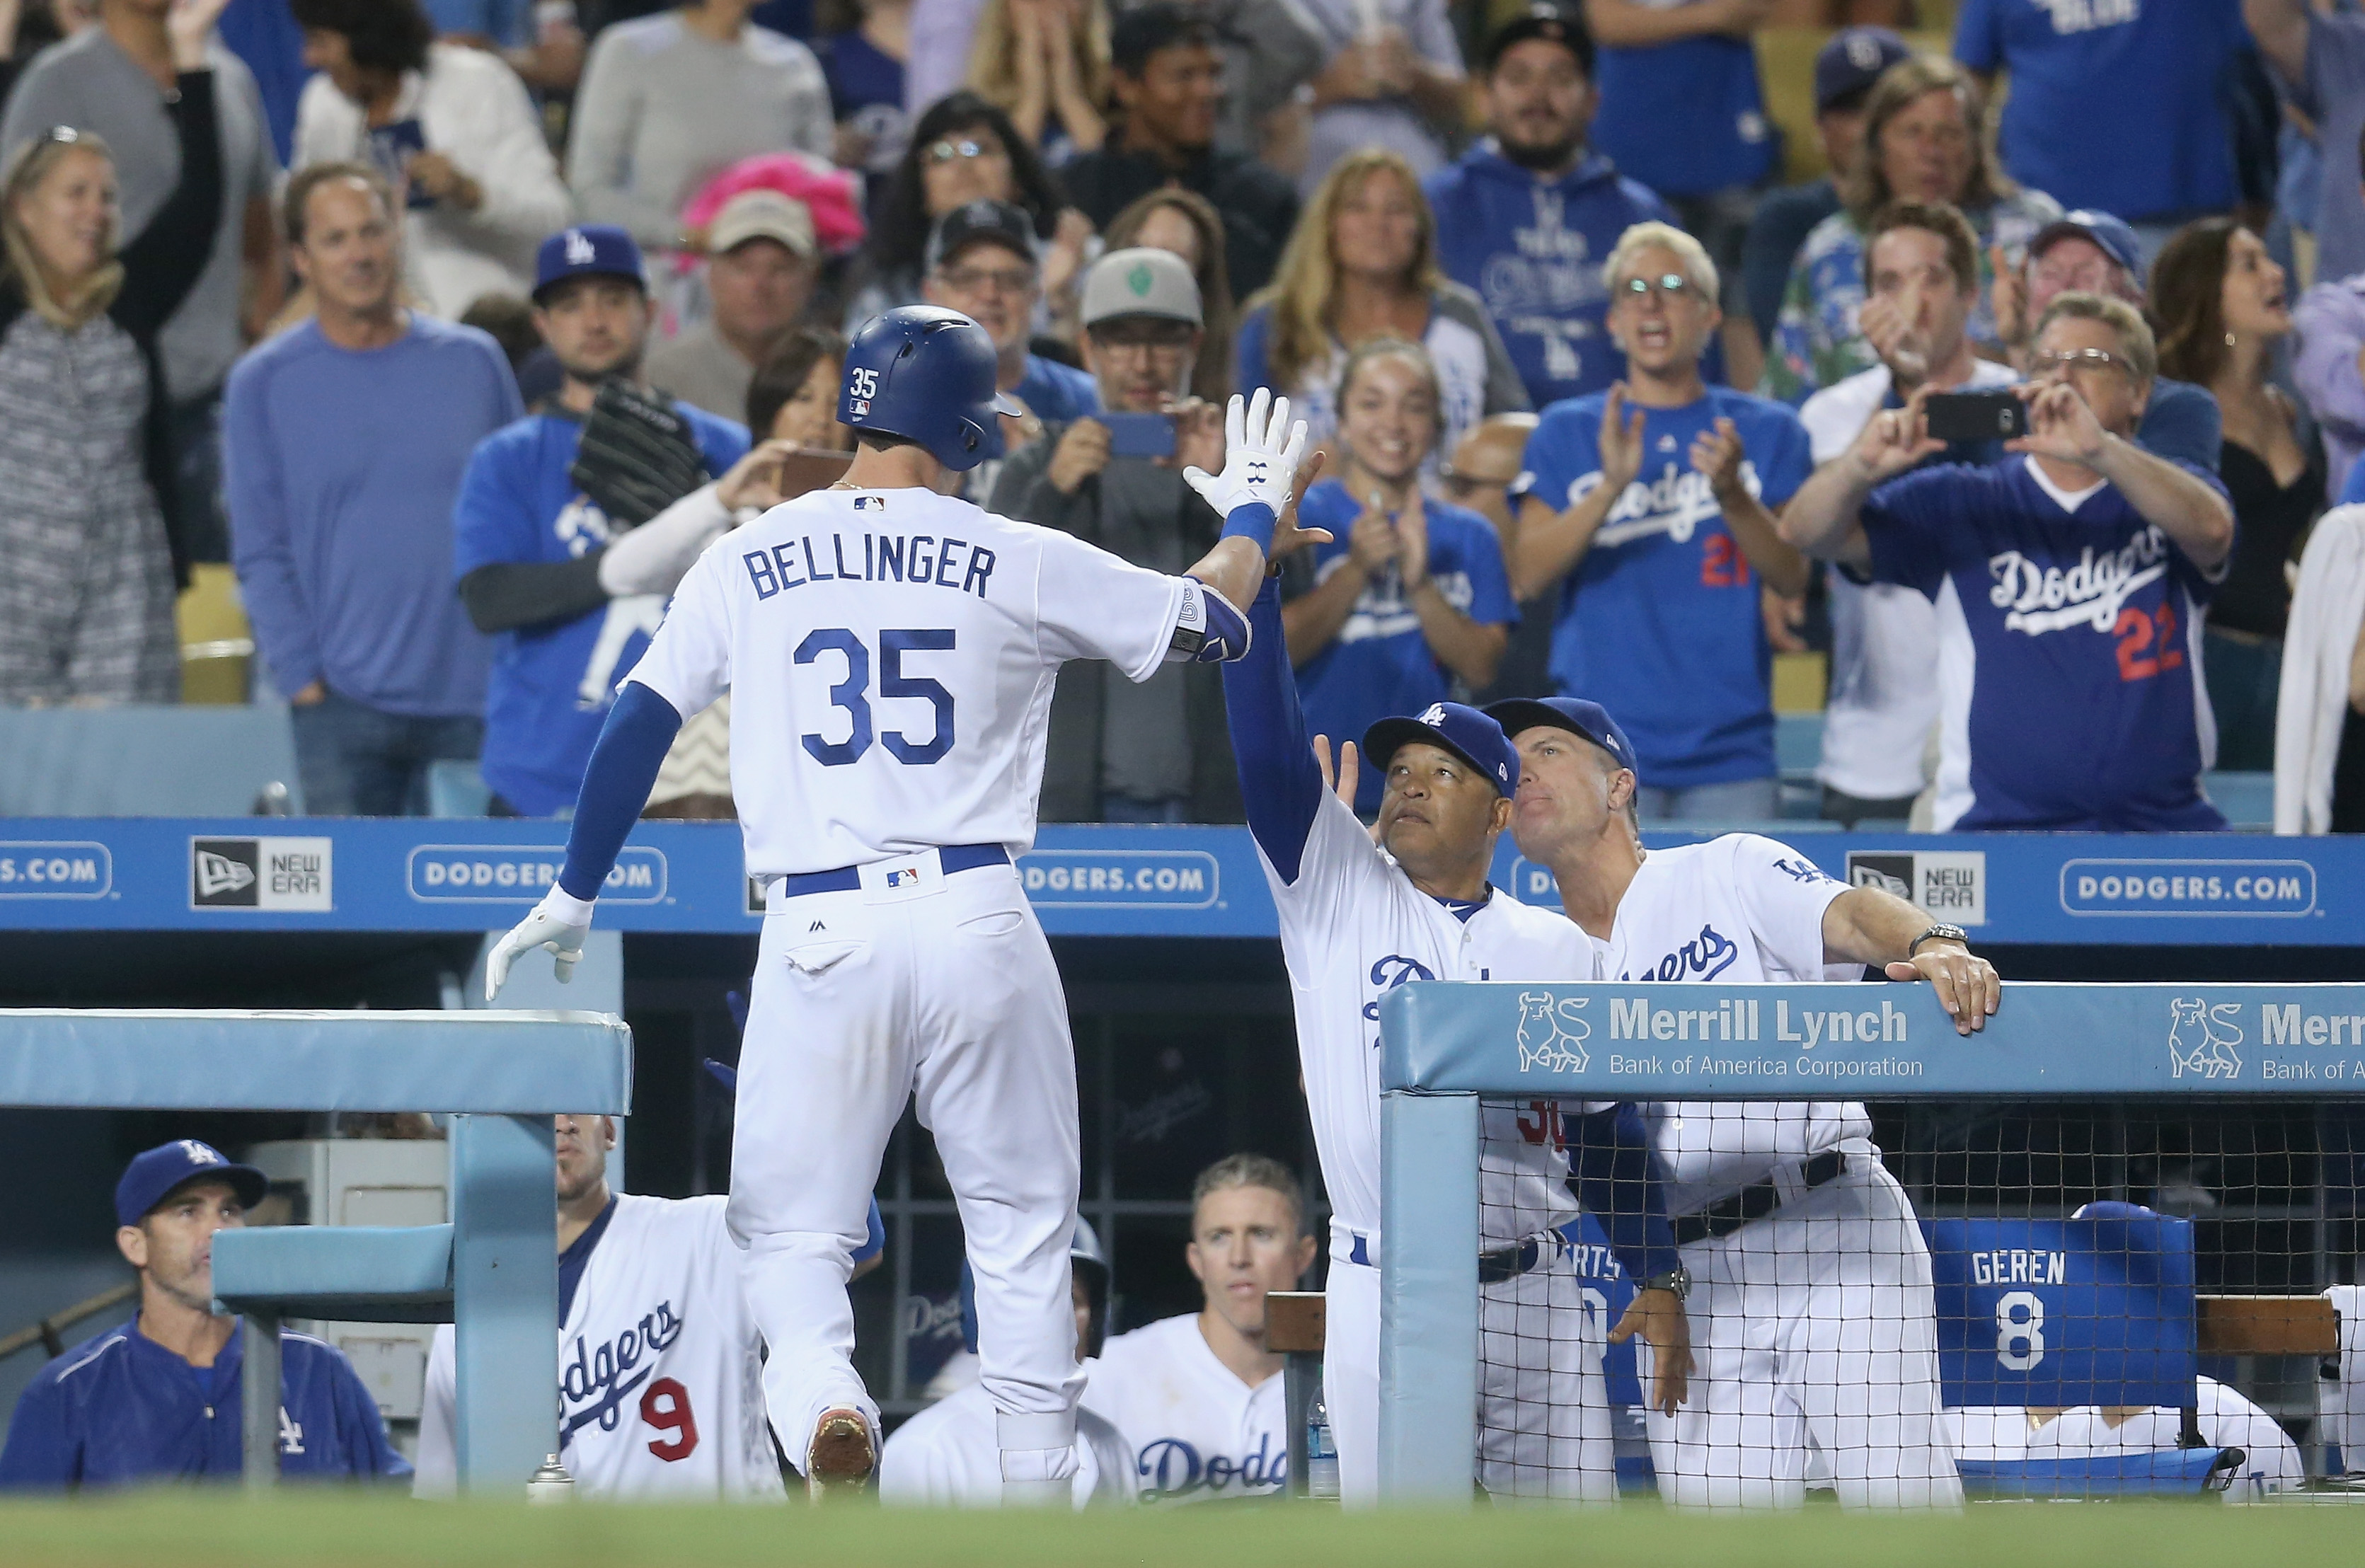 Dodgers rally, win Darvish's home debut